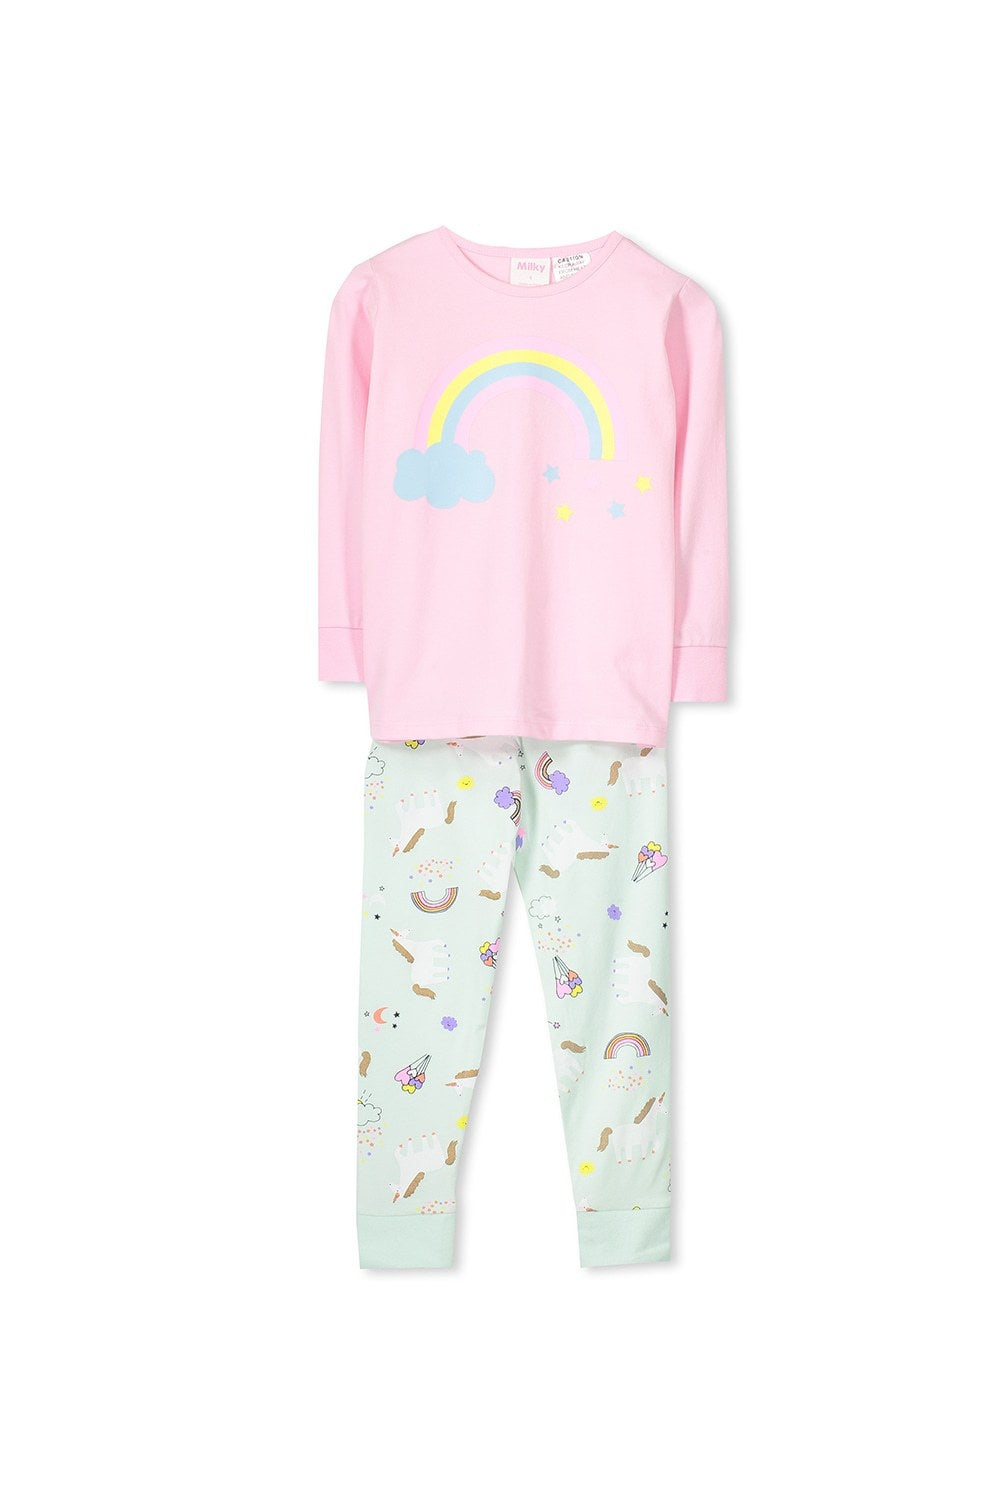 fairy floss unicorn pj's